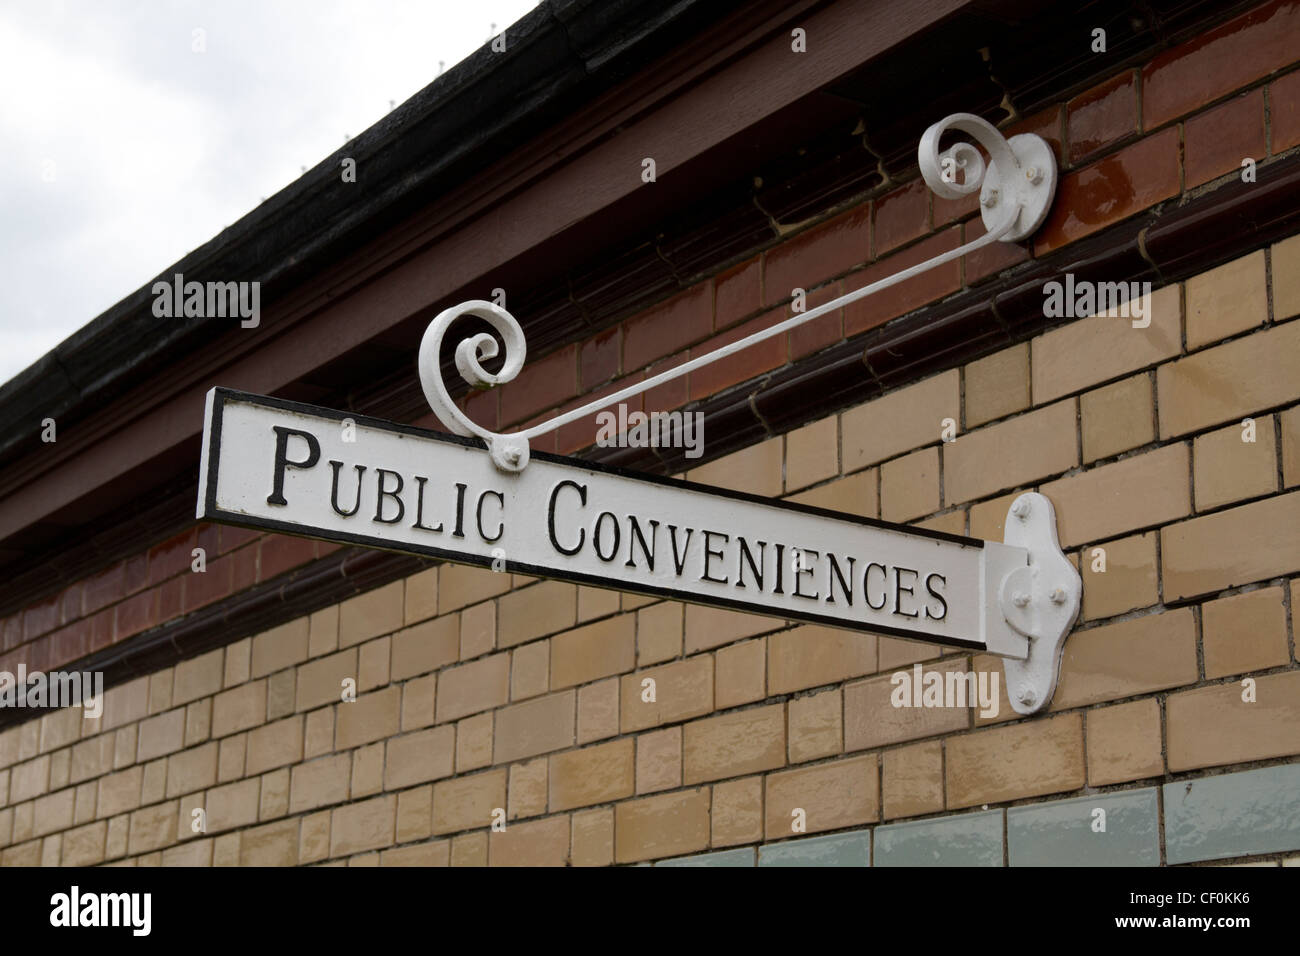 a Victorian public convenience sign in Rothesay, Scotland - Stock Image